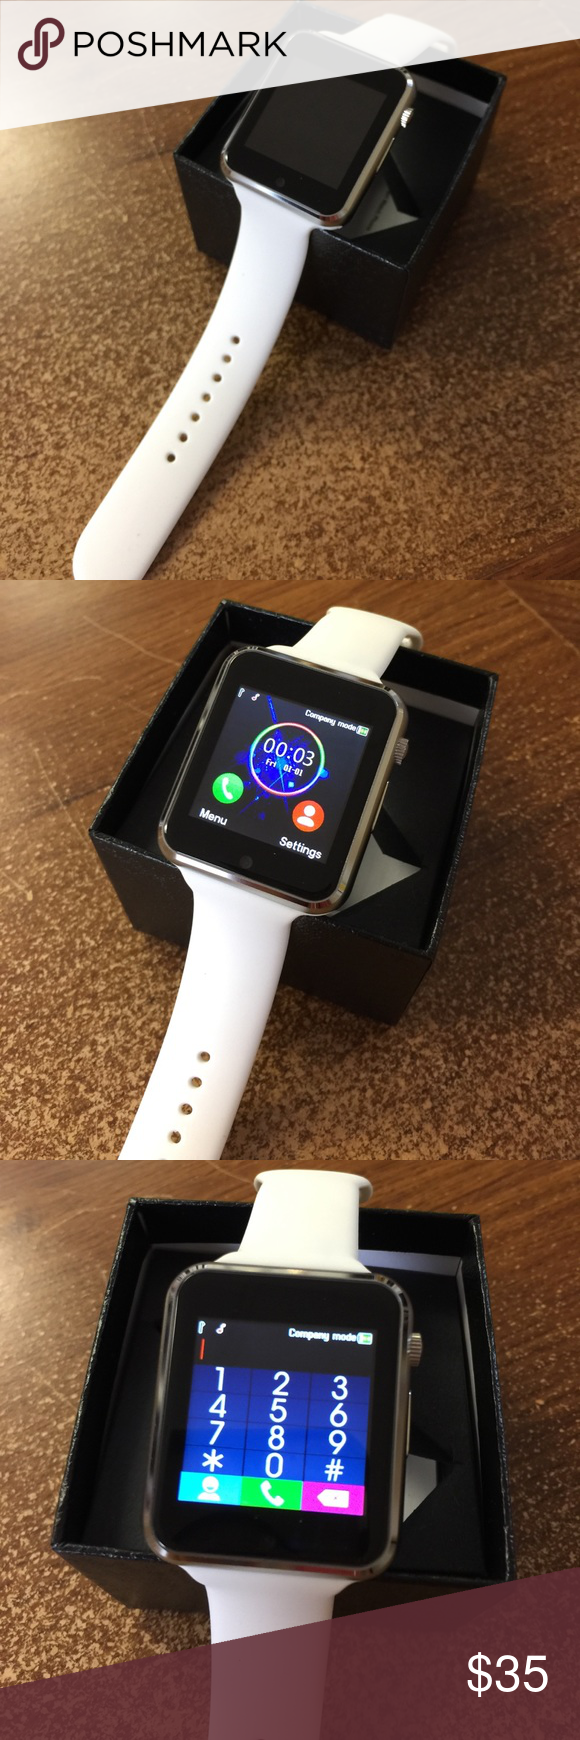 Smart watch for an Android device. Smart watch for an